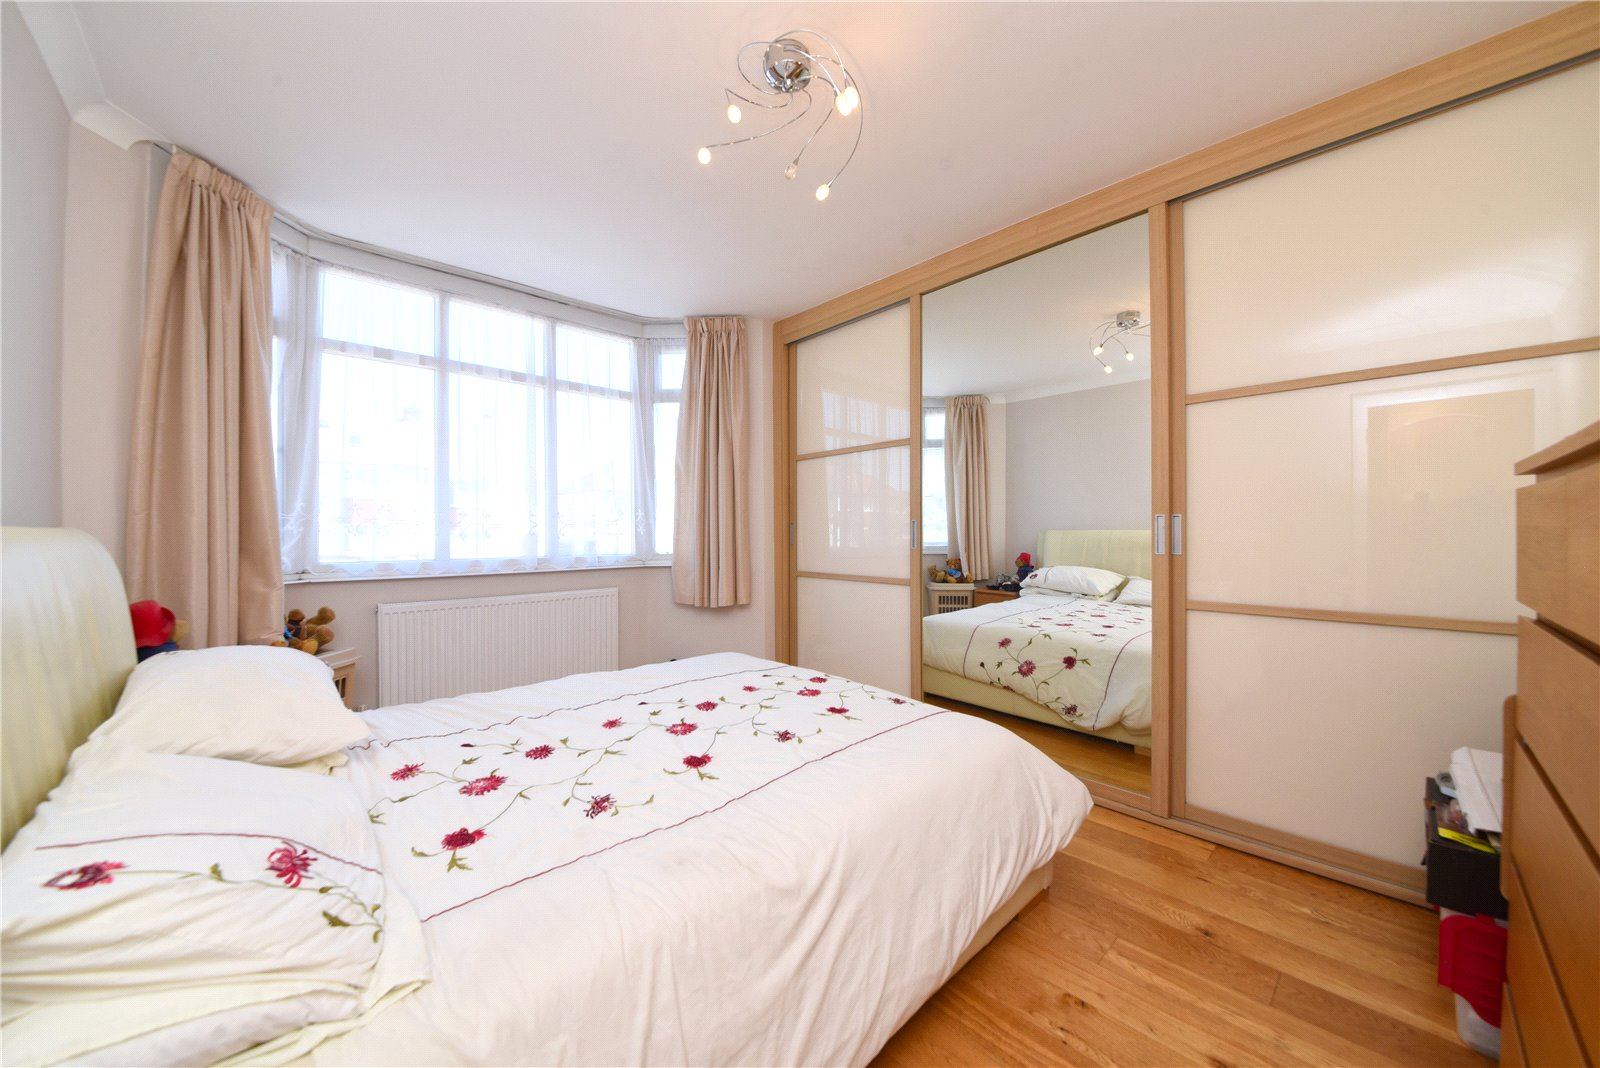 3 bed house for sale in Southgate, N14 4NY 1